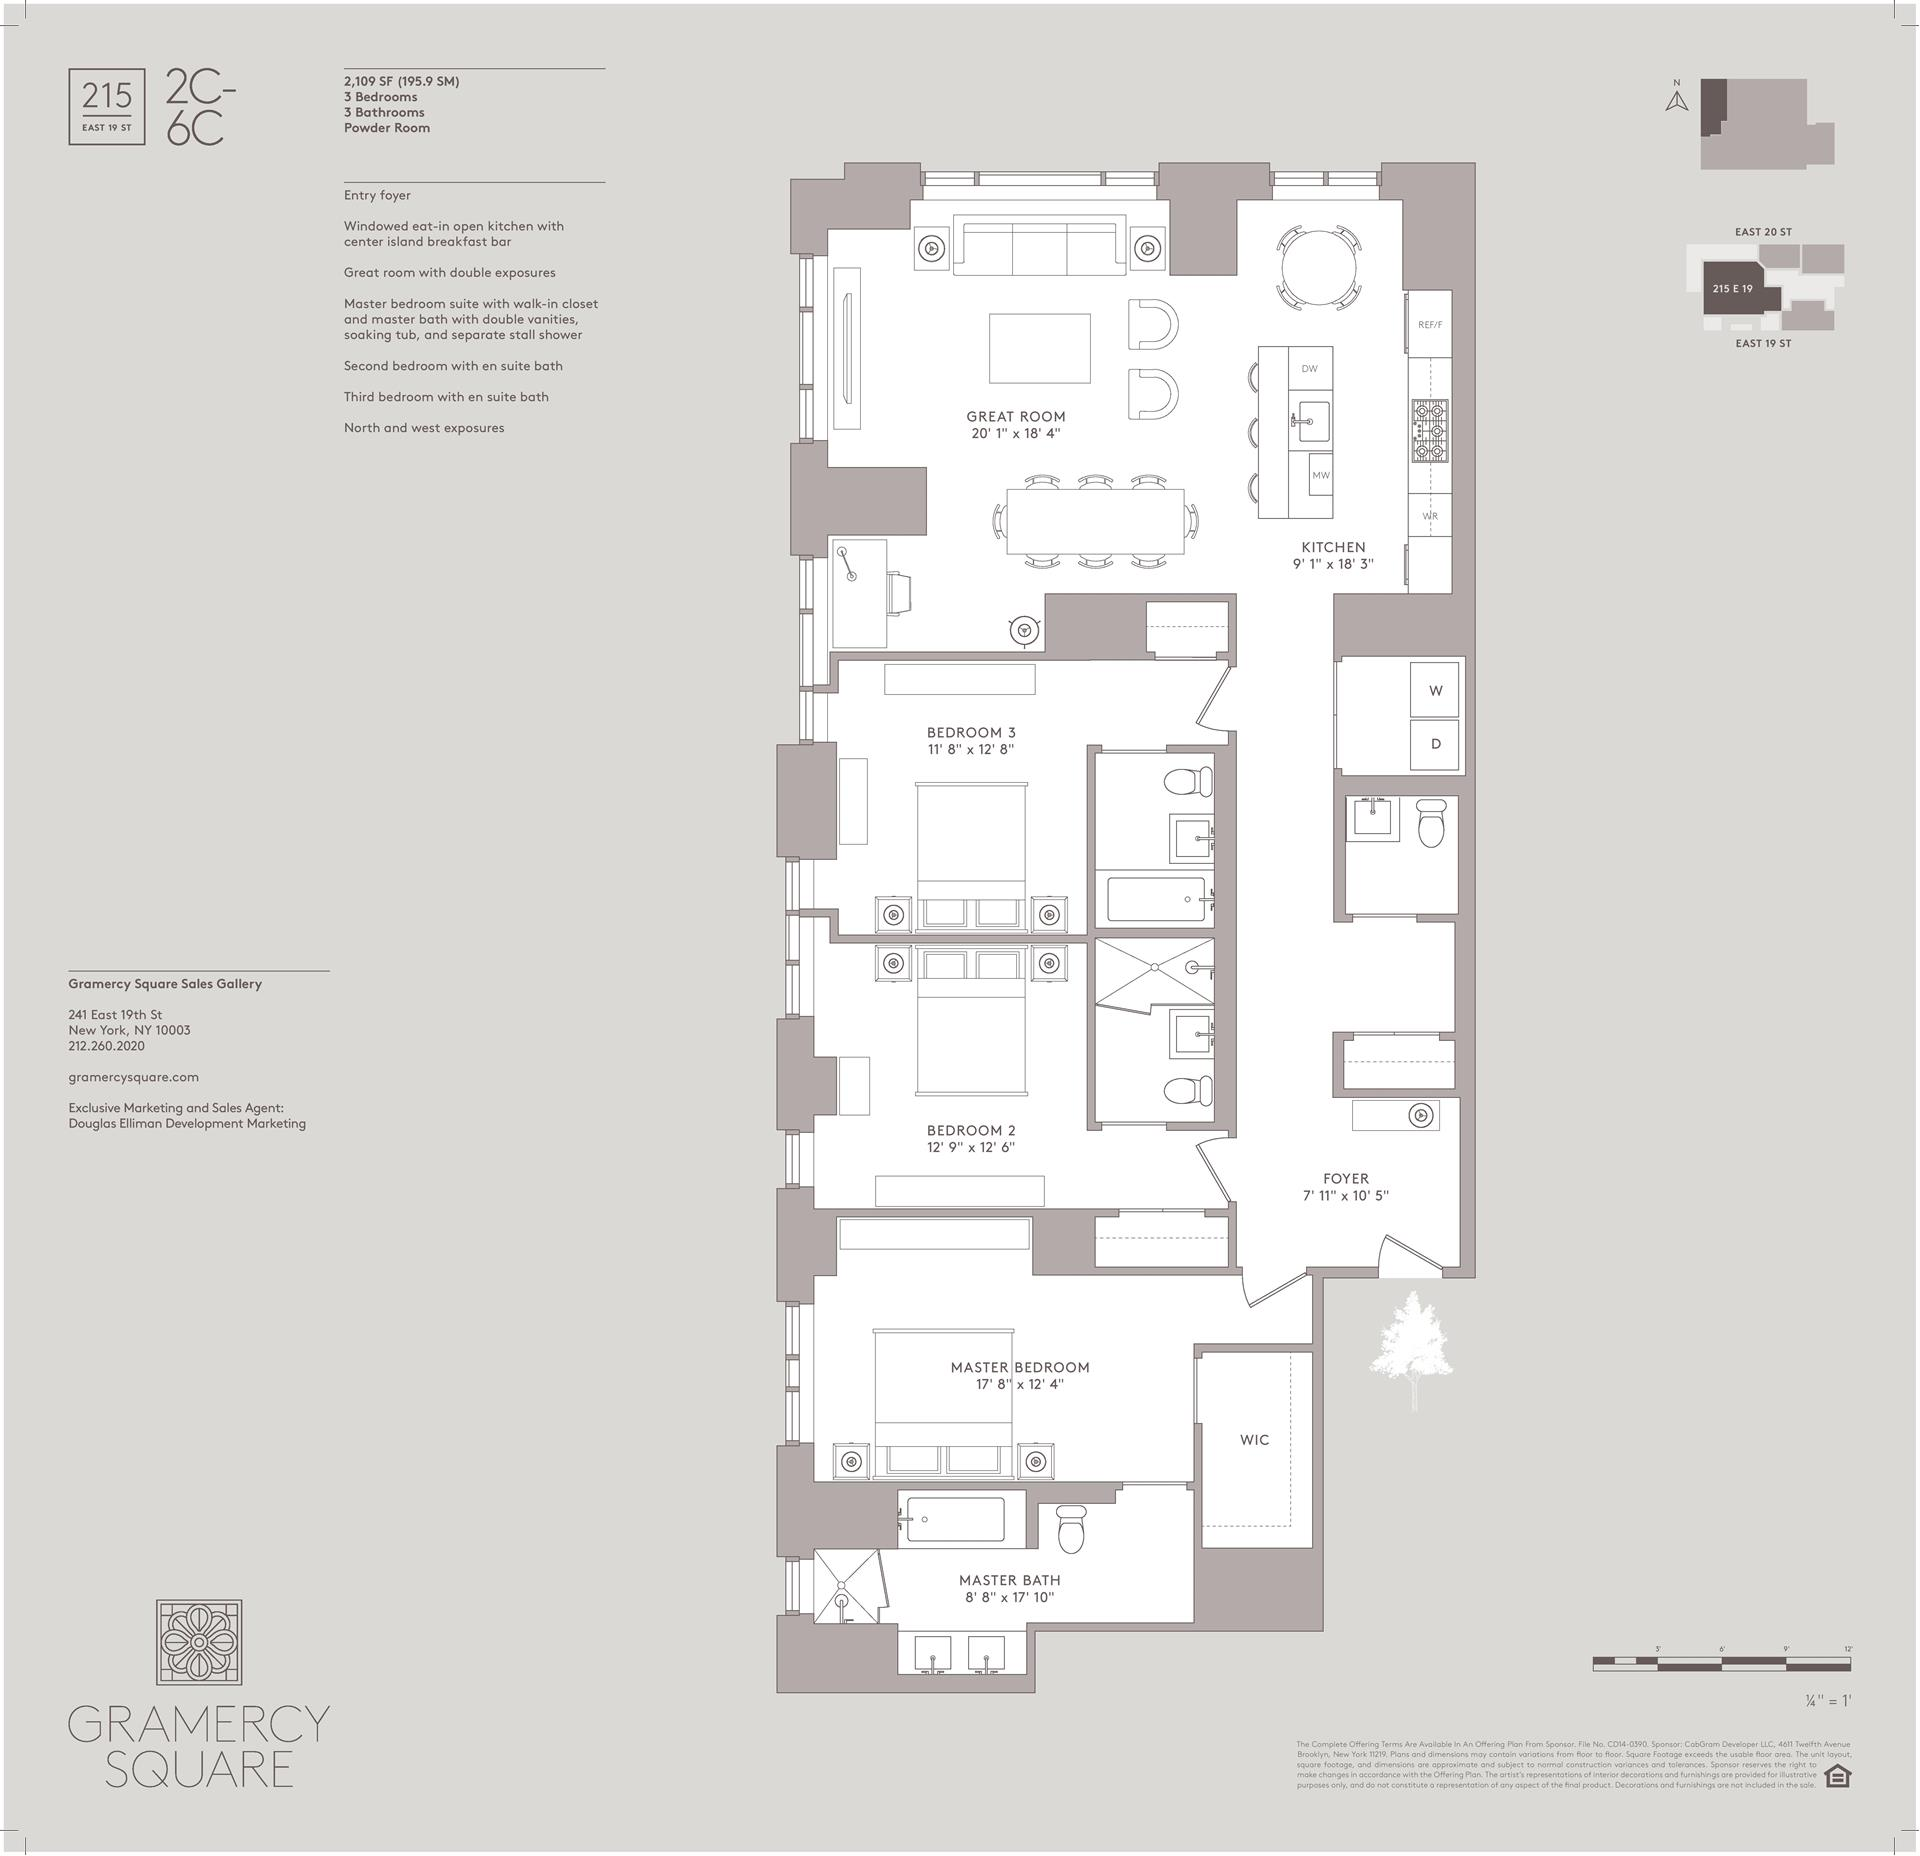 Floor plan of Gramercy Square, 215 East 19th St, 3C - Gramercy - Union Square, New York